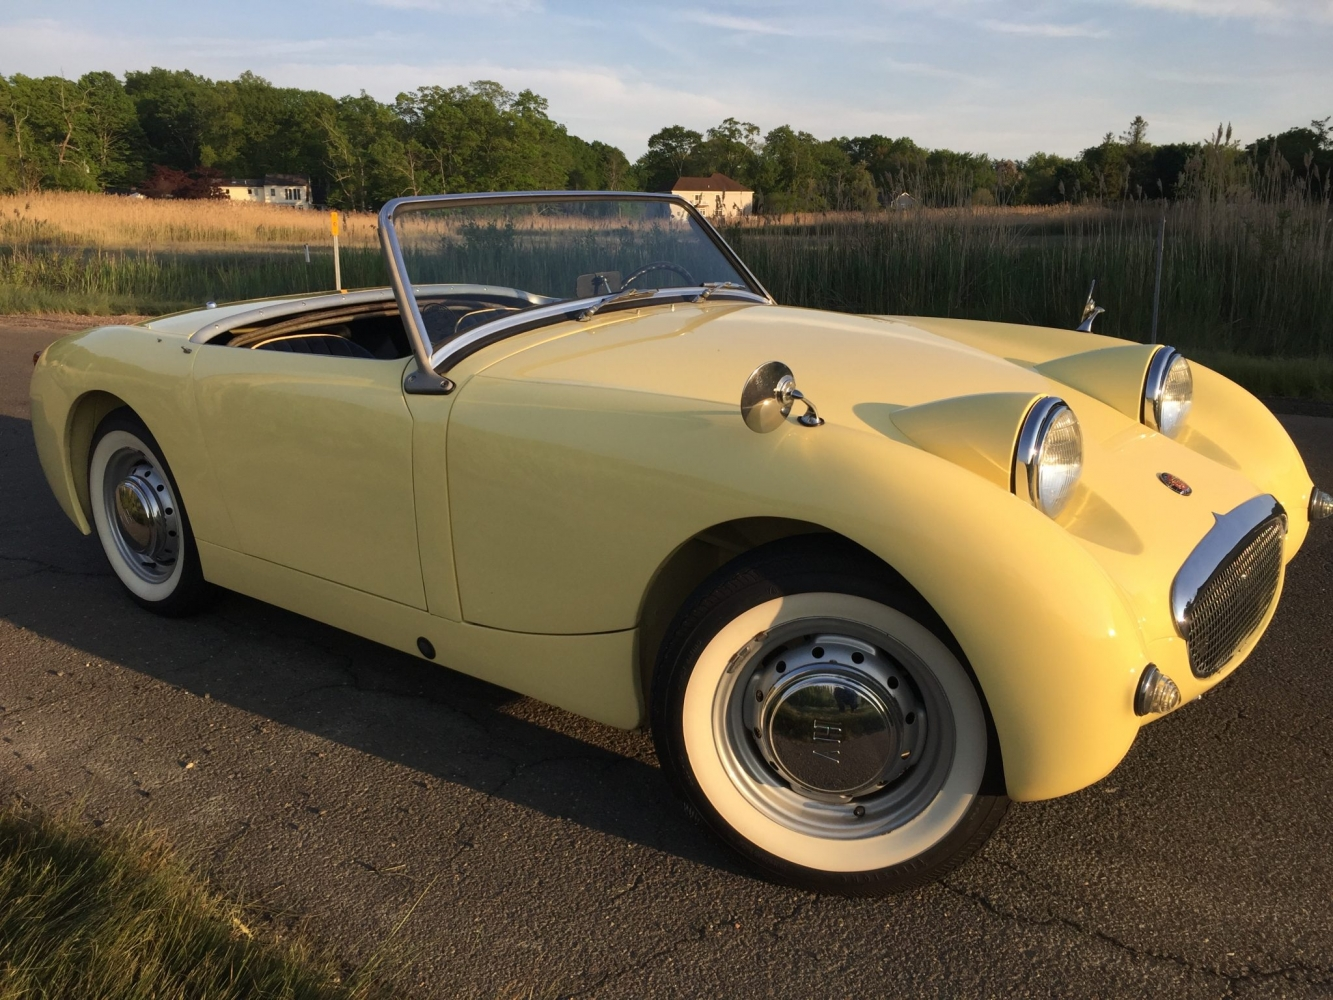 Restored Primrose 1960 Austin Healey Bugeye Sprite for sale